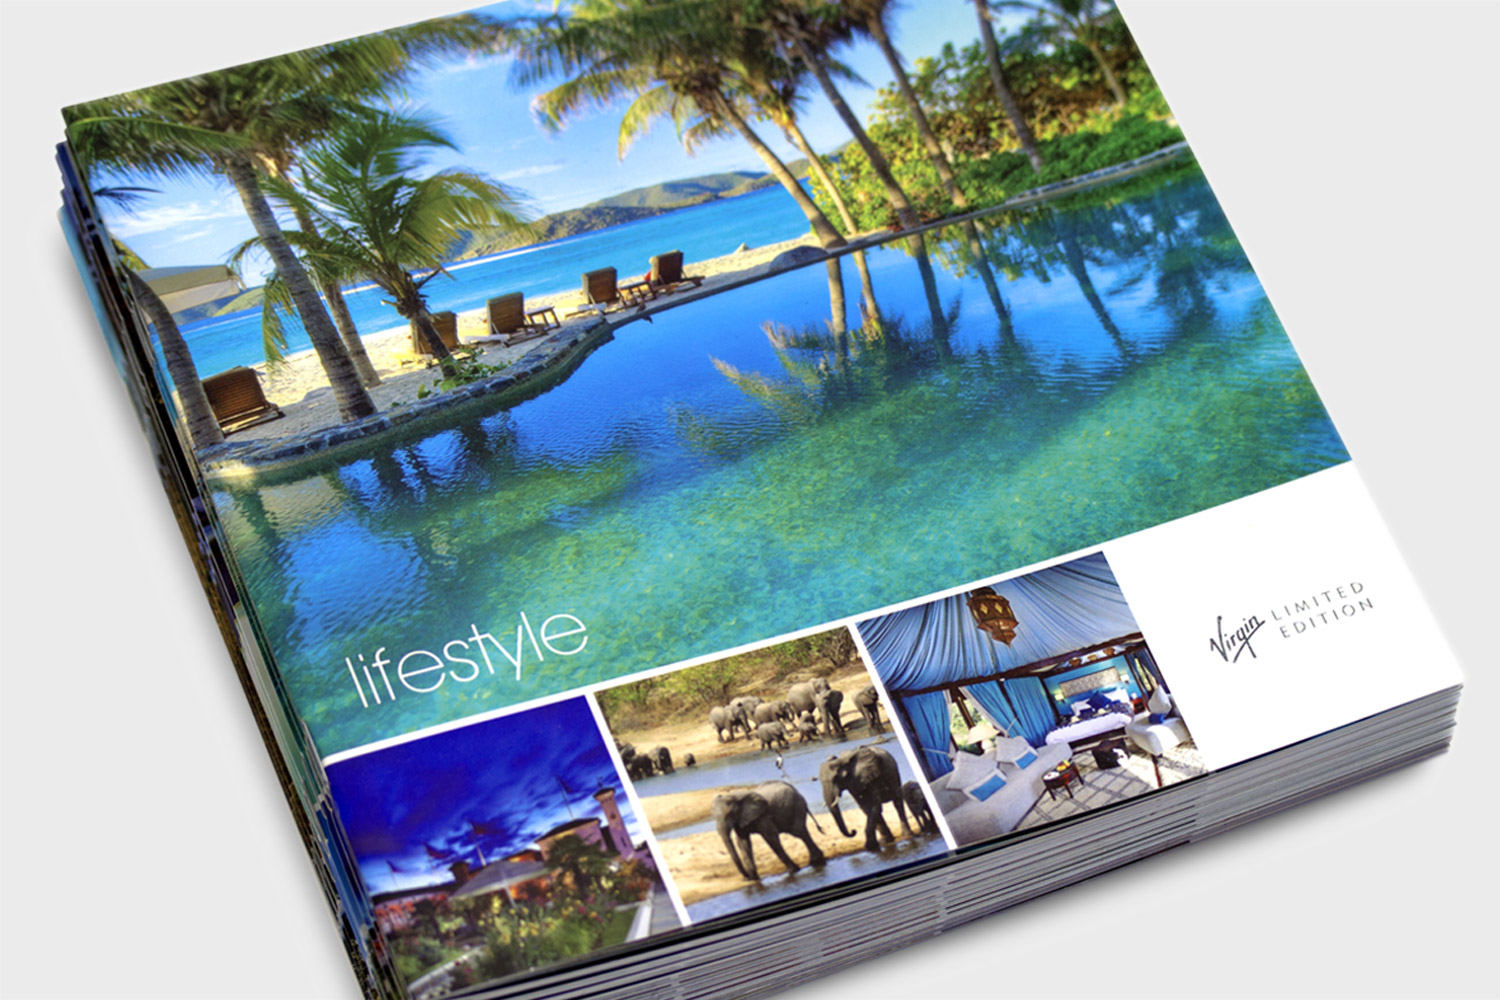 Lifestyle-Covers01-v2-1500x1000